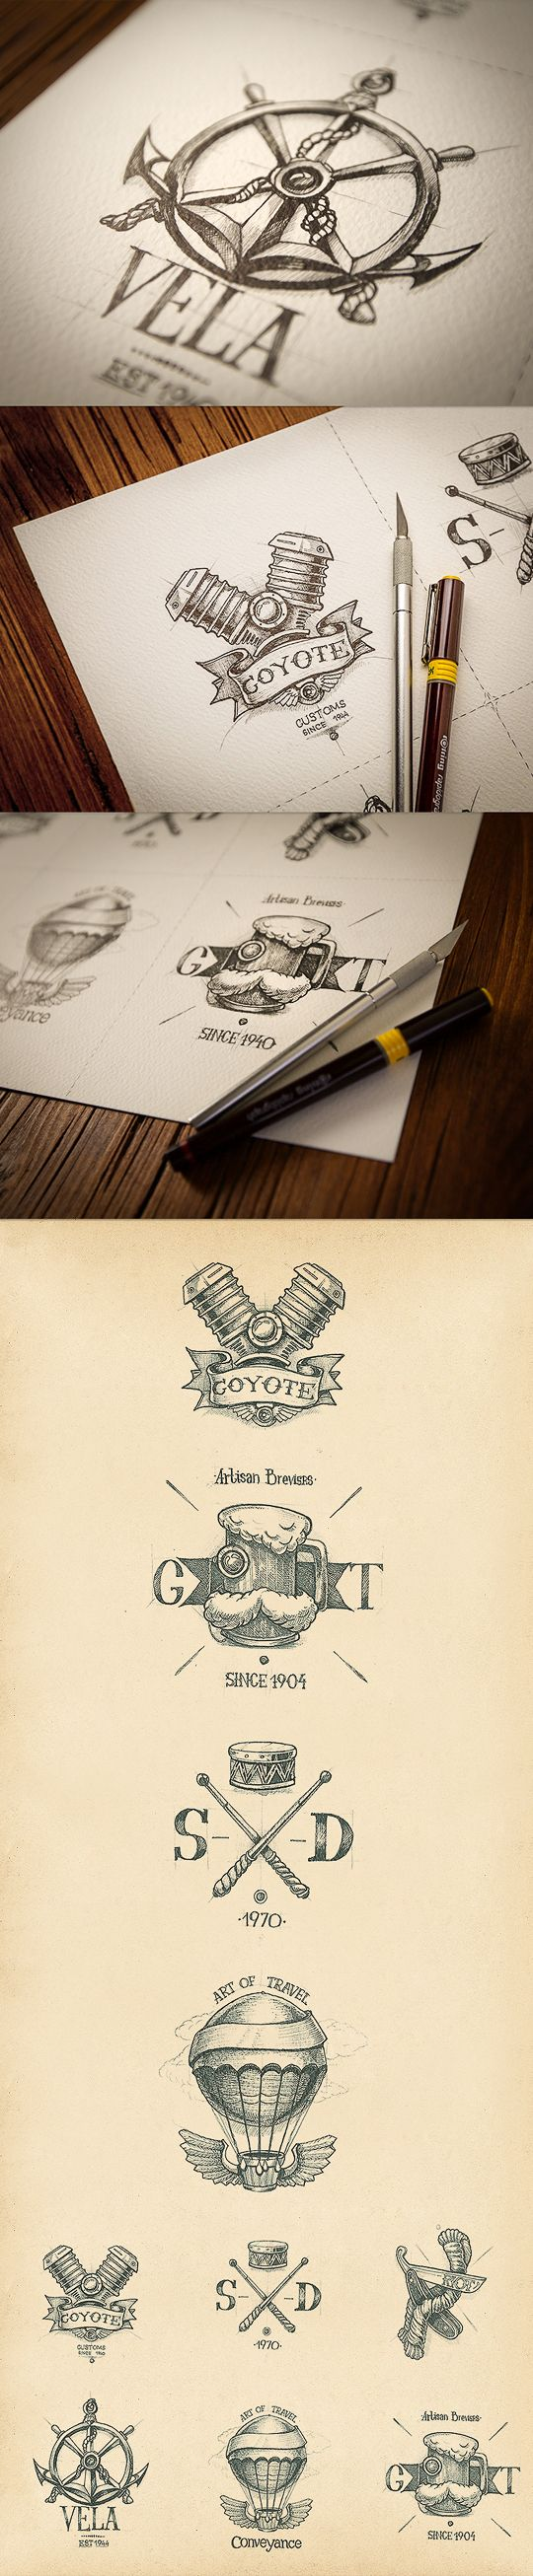 Logotypes collection | 2012-2013 on Behance